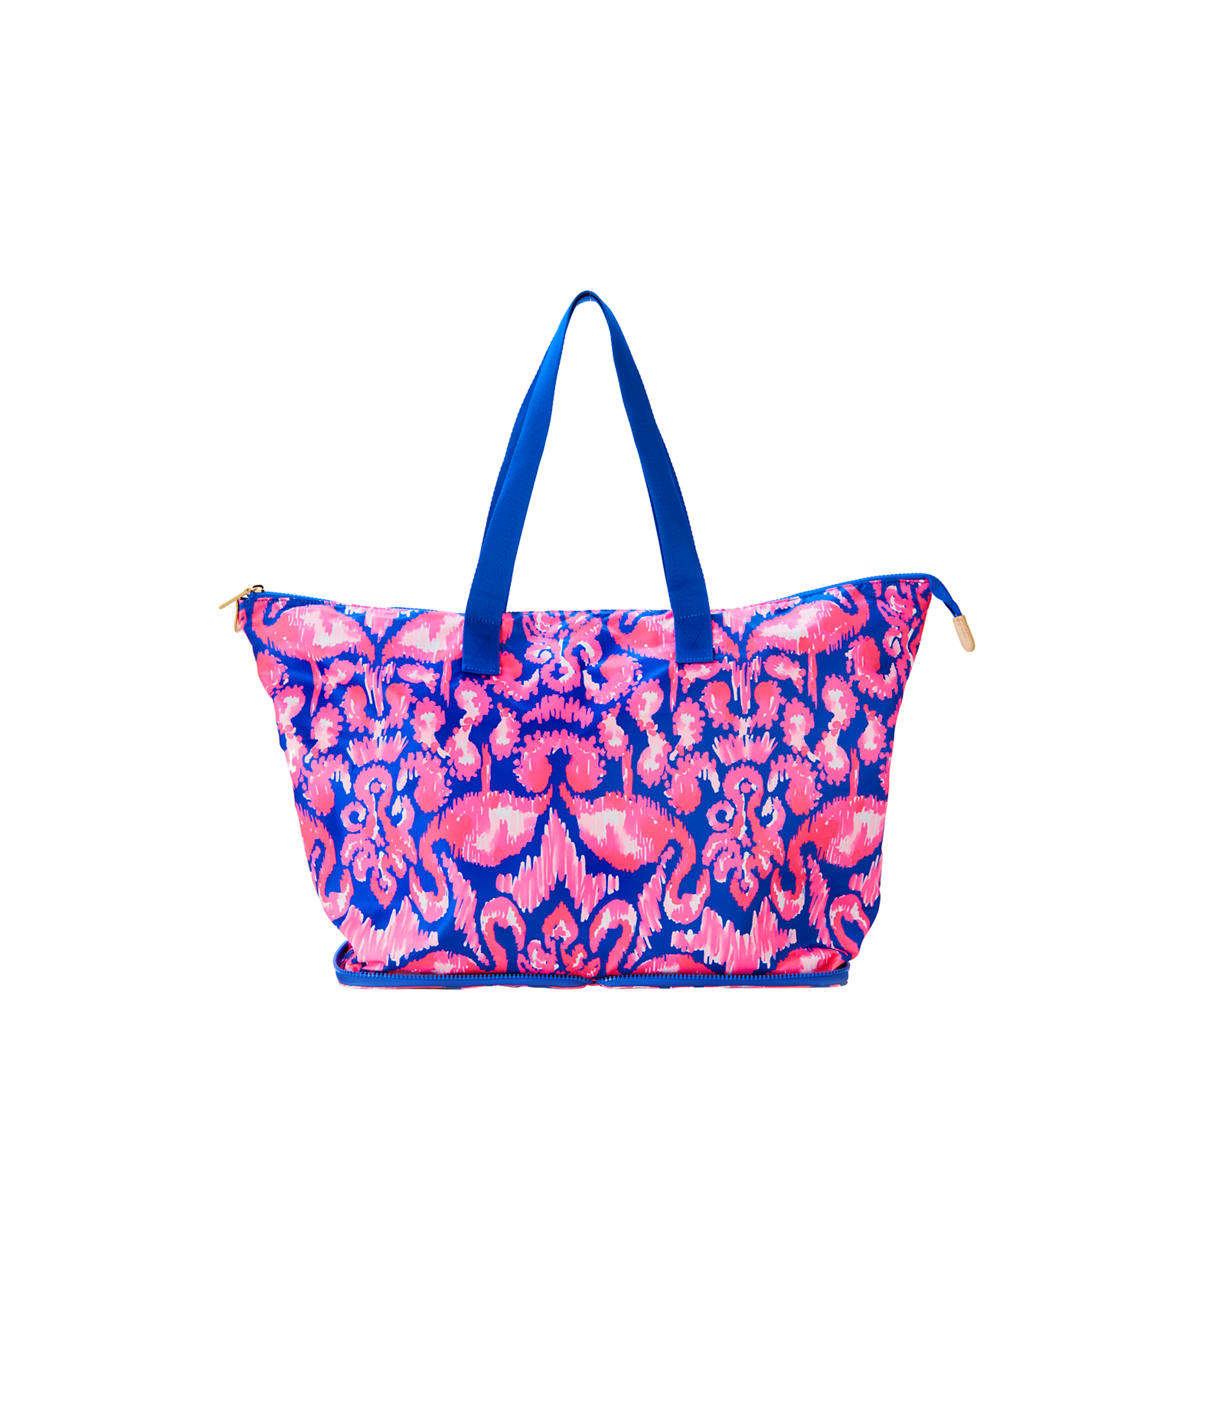 Lilly Pulitzer Getaway Packable Tote